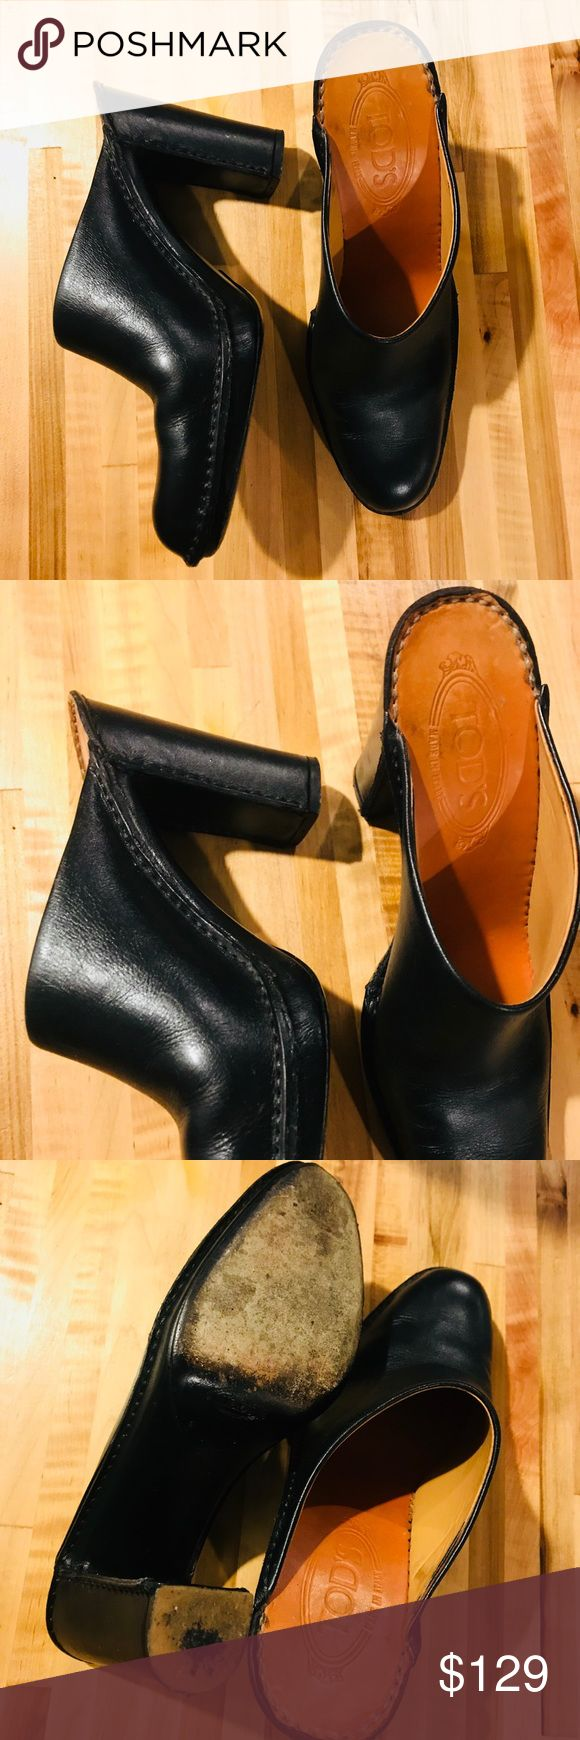 Tod's Women's Black Leather Pointed Toe Clog Mule Tod's Women's Black Leather Pointed Toe Heeled Clog Mule. Gorgeous and in excellent condition. Right on trend. Size 8 Tod's Shoes Mules & Clogs